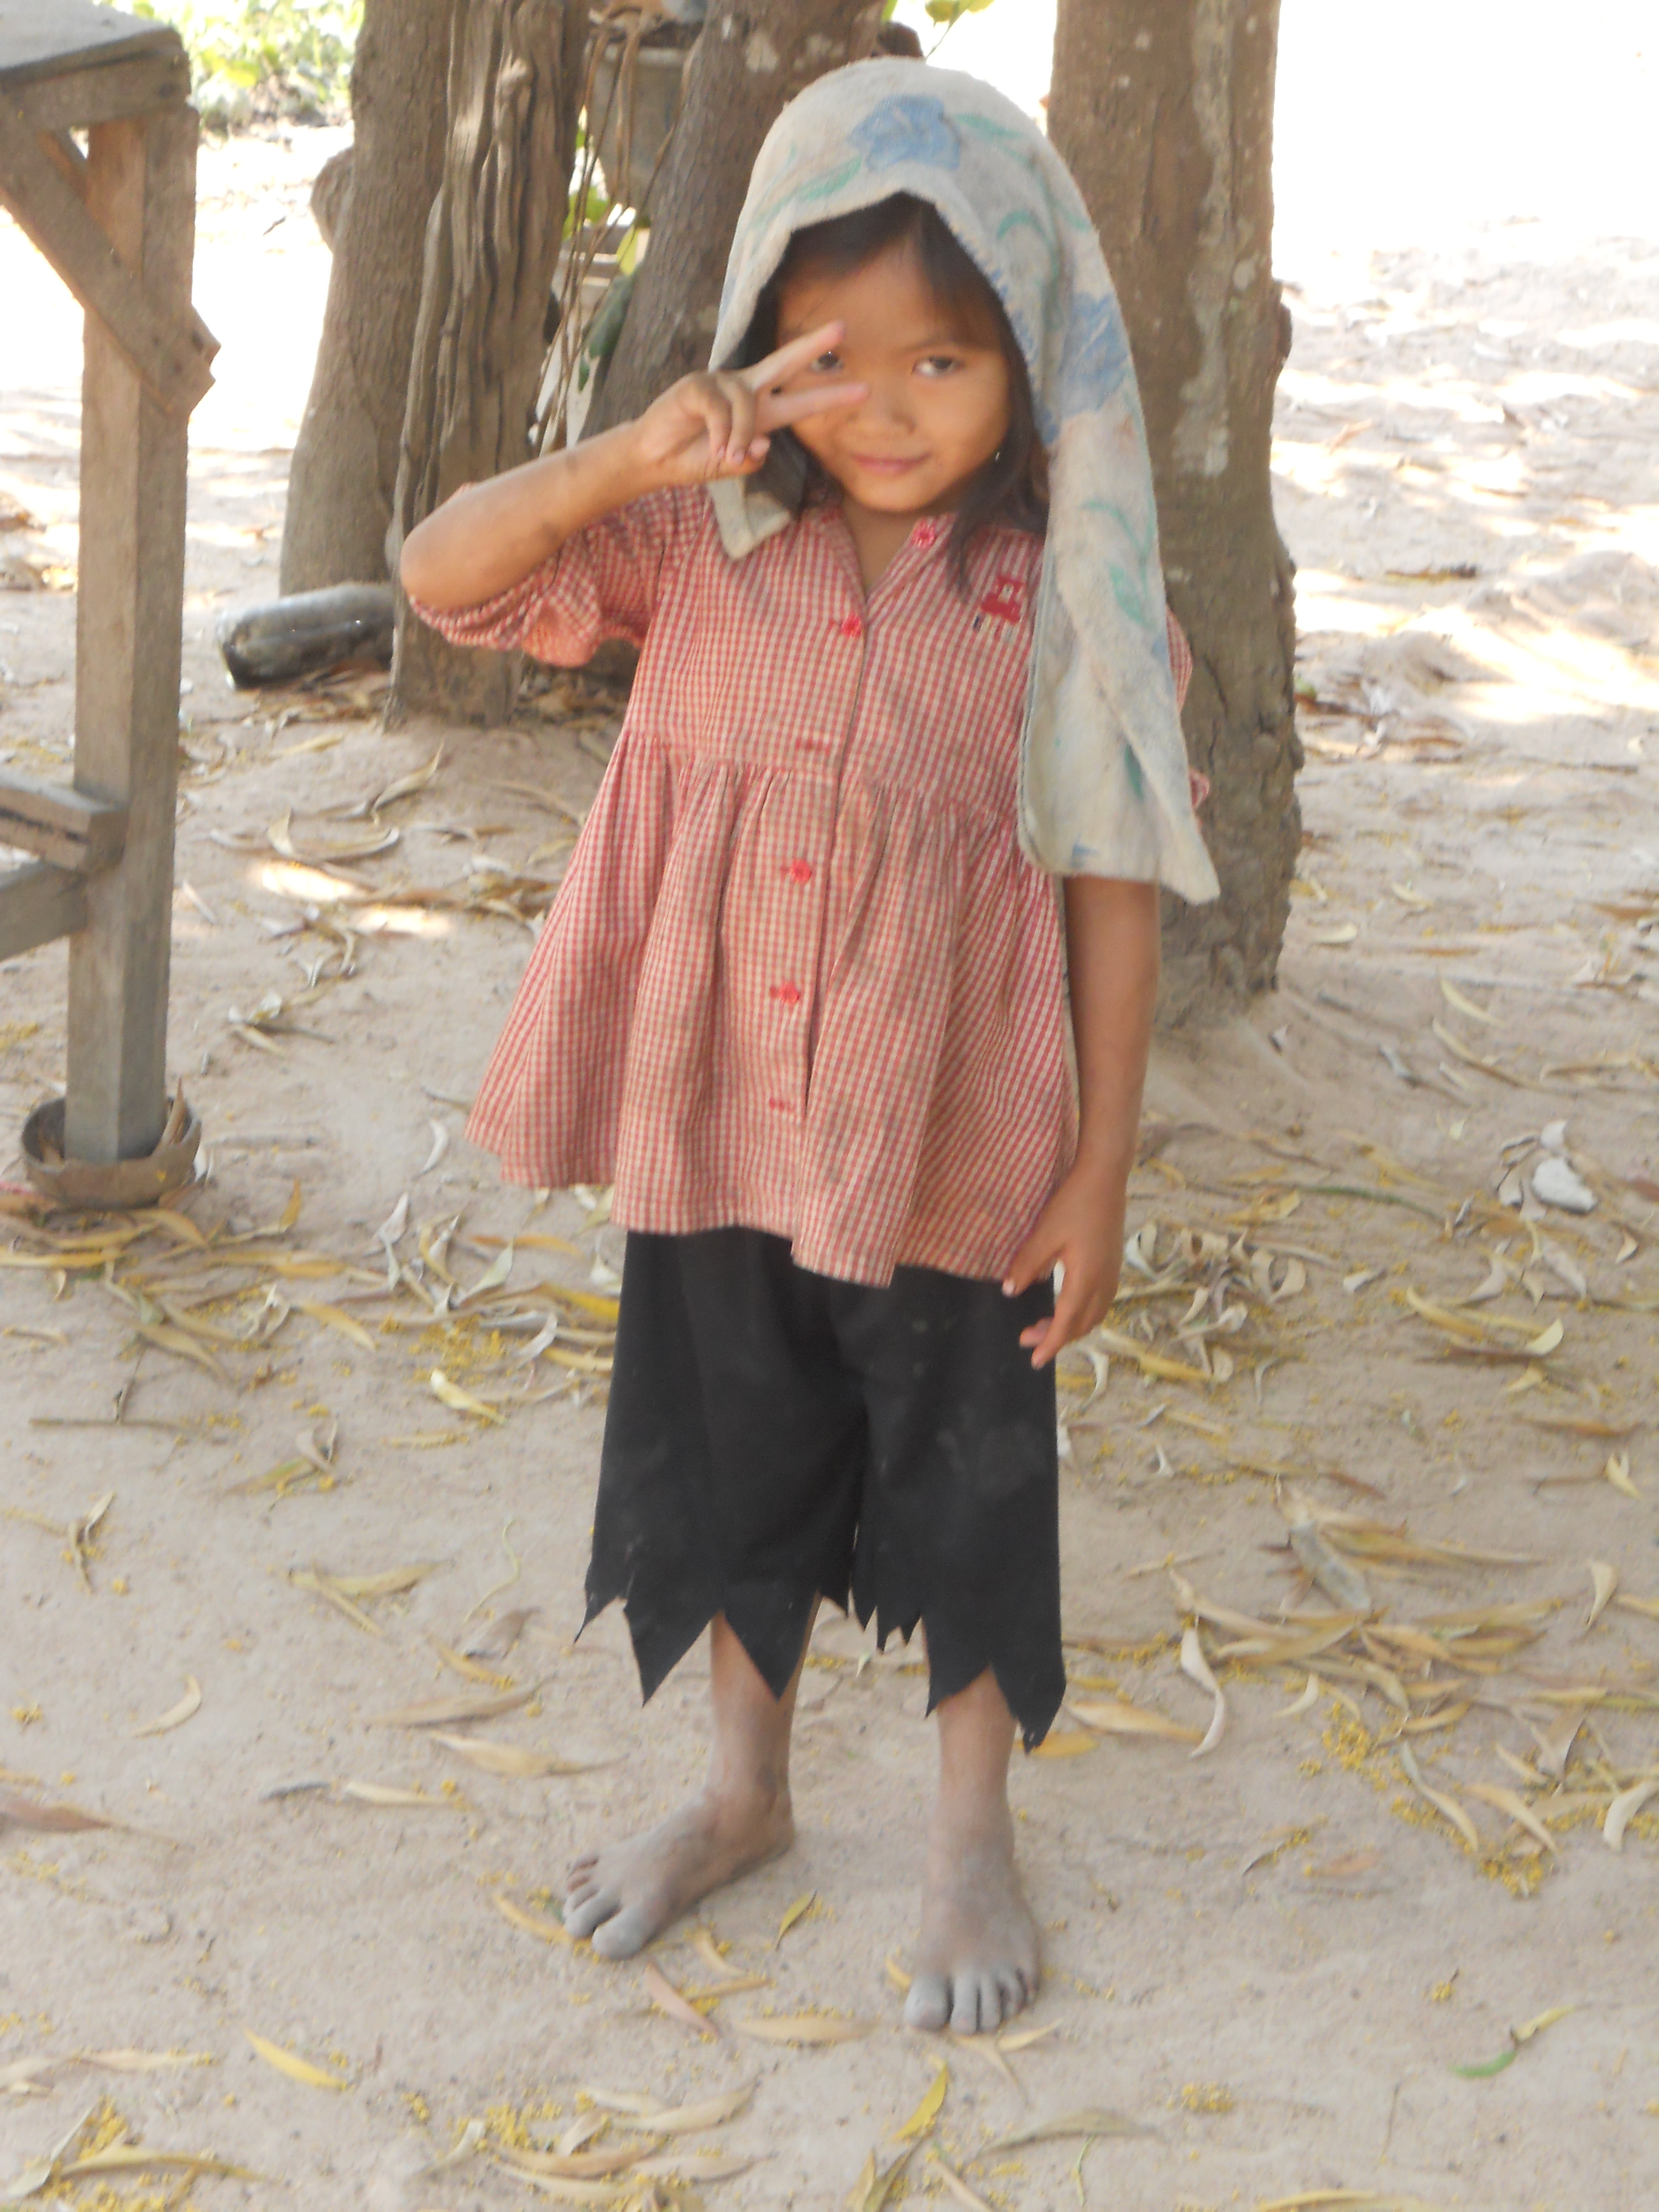 Naked cambodian kids Cambodia and Vietnam: Part 1